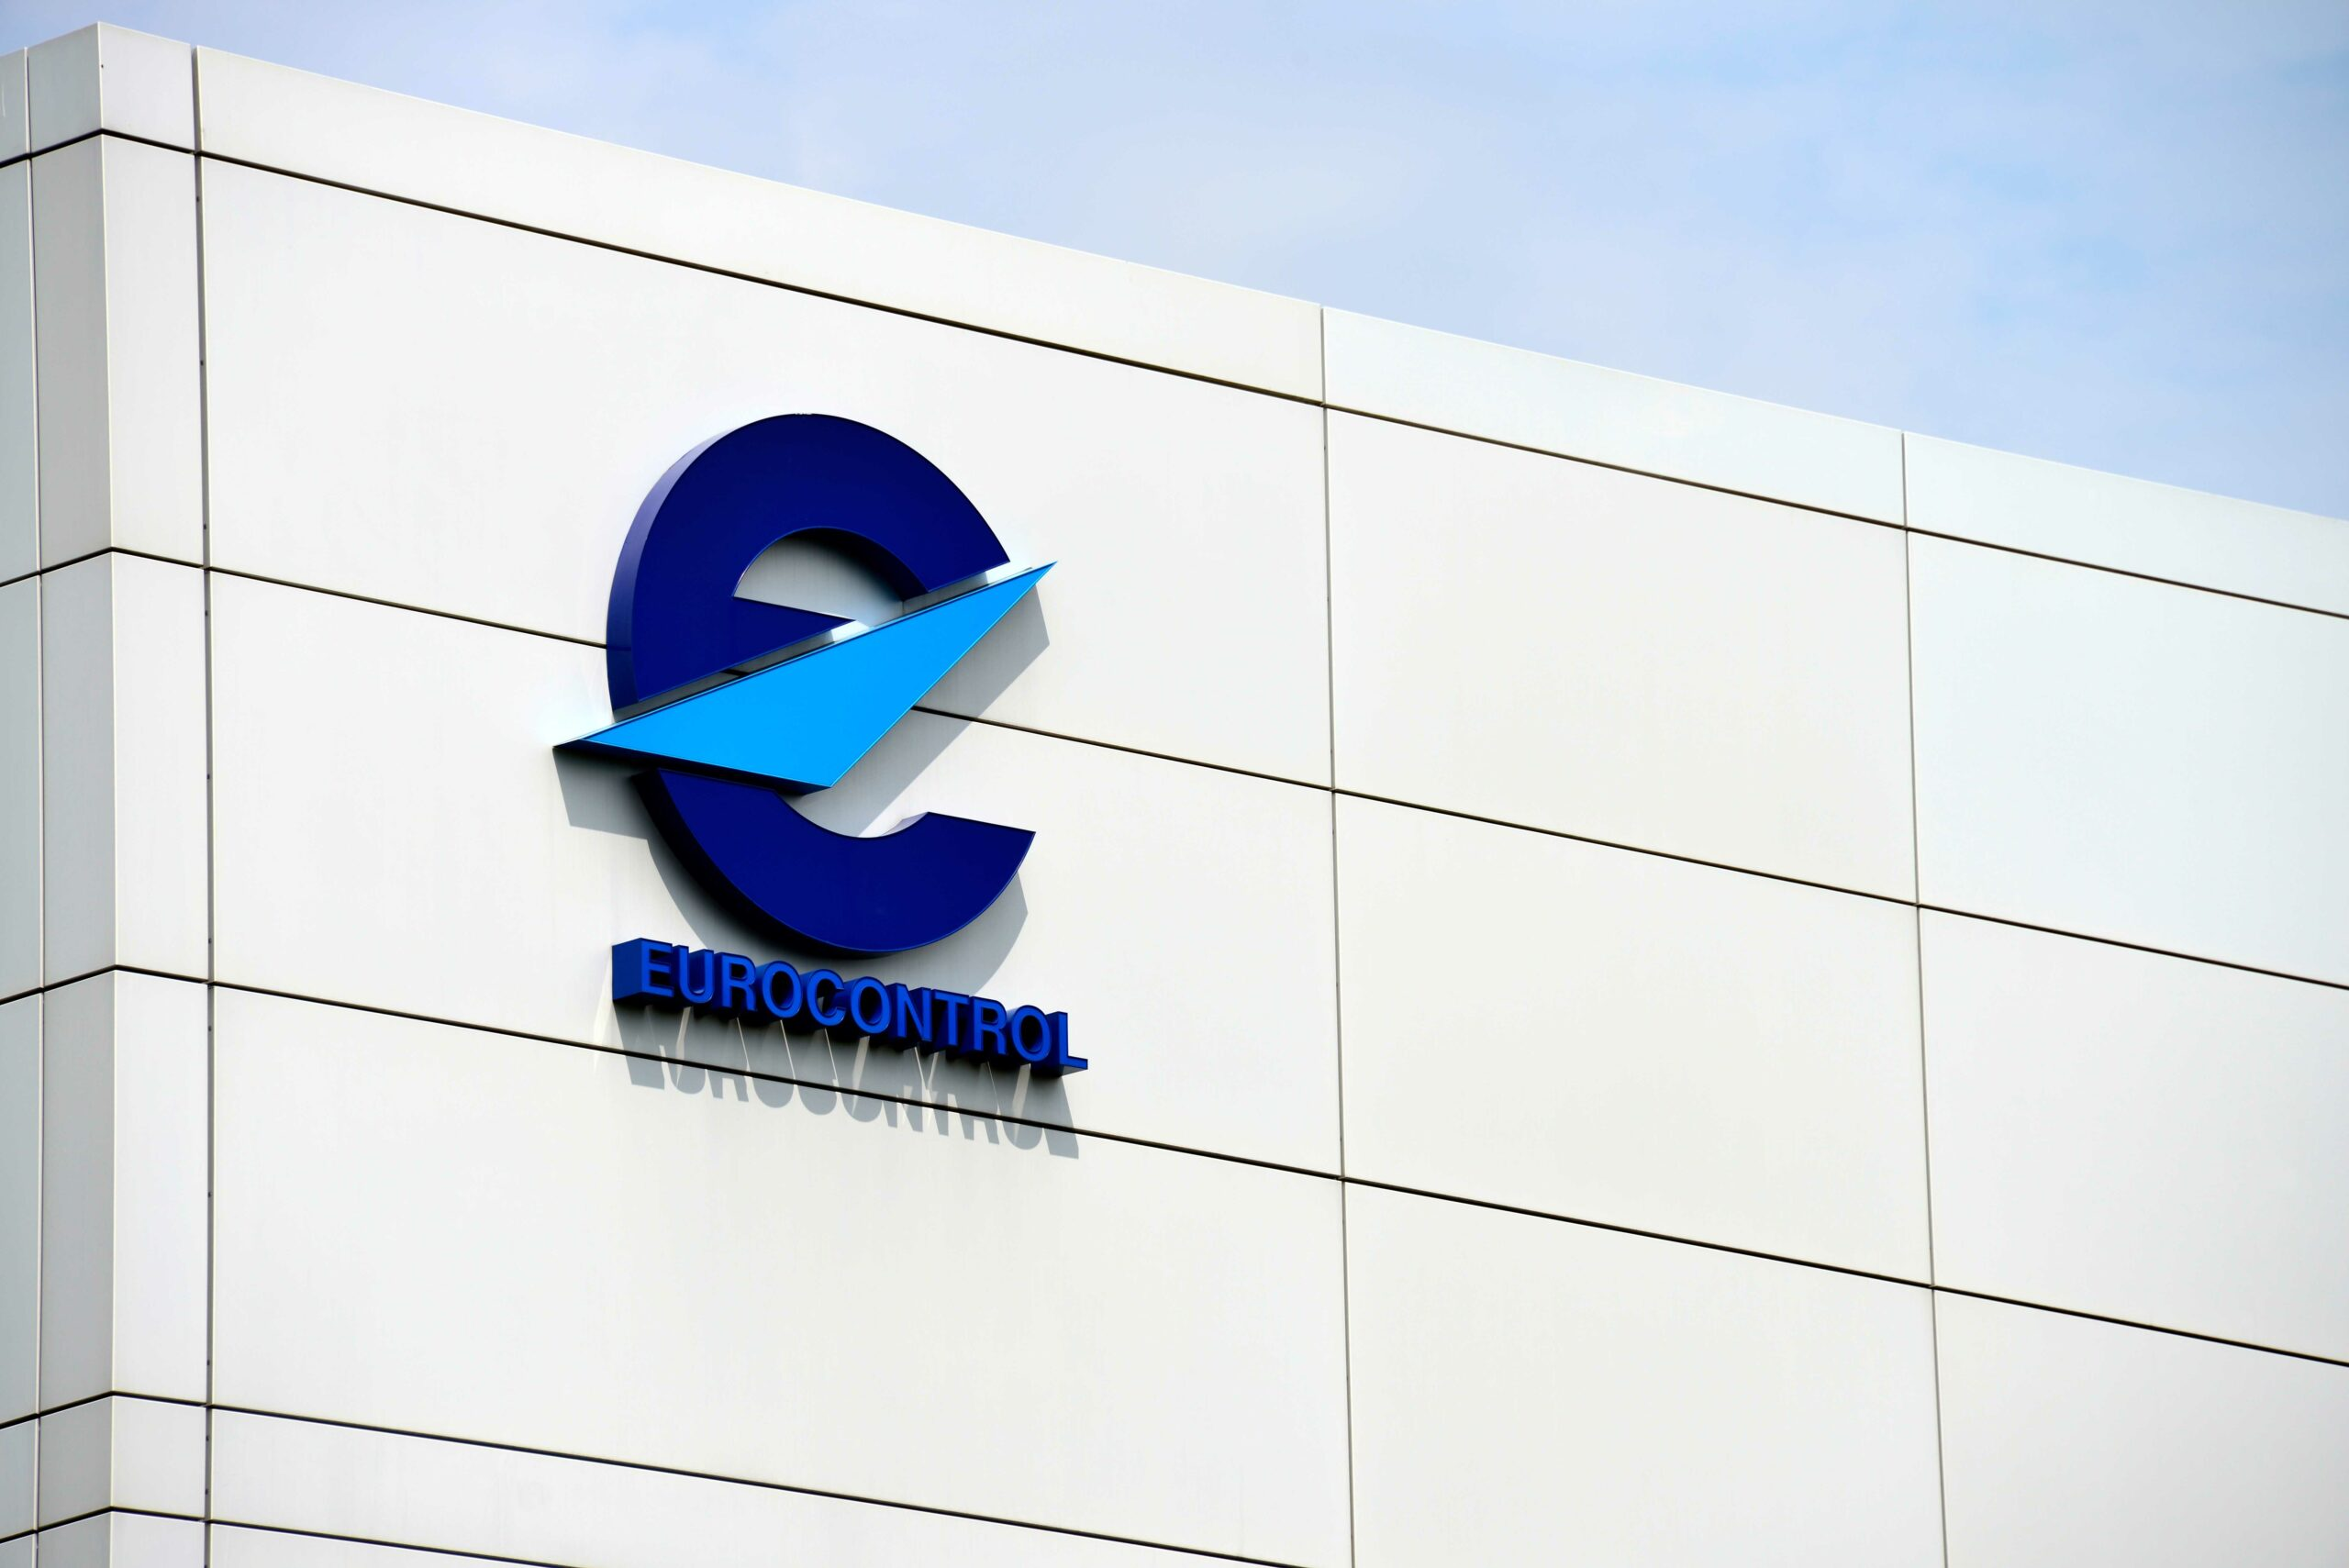 Eurocontrol publishing planning for assisting airport recovery 1